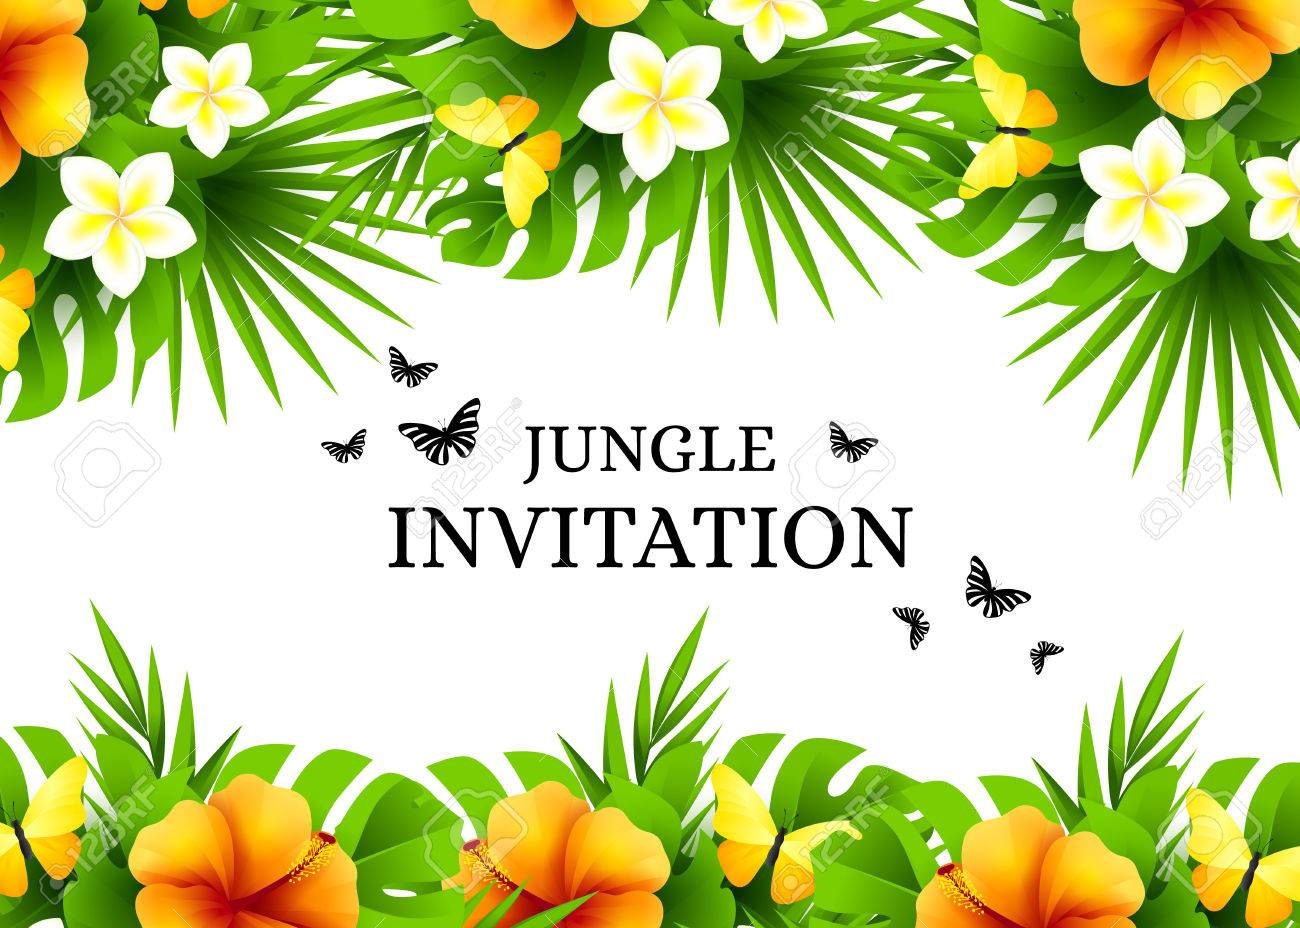 Summer tropical hawaiian background with jungle palm tree leaves, exotic flowers and yellow butterflies. Horizontal vector invitation banners with hibiscus floral decorations and copy space - 62887571